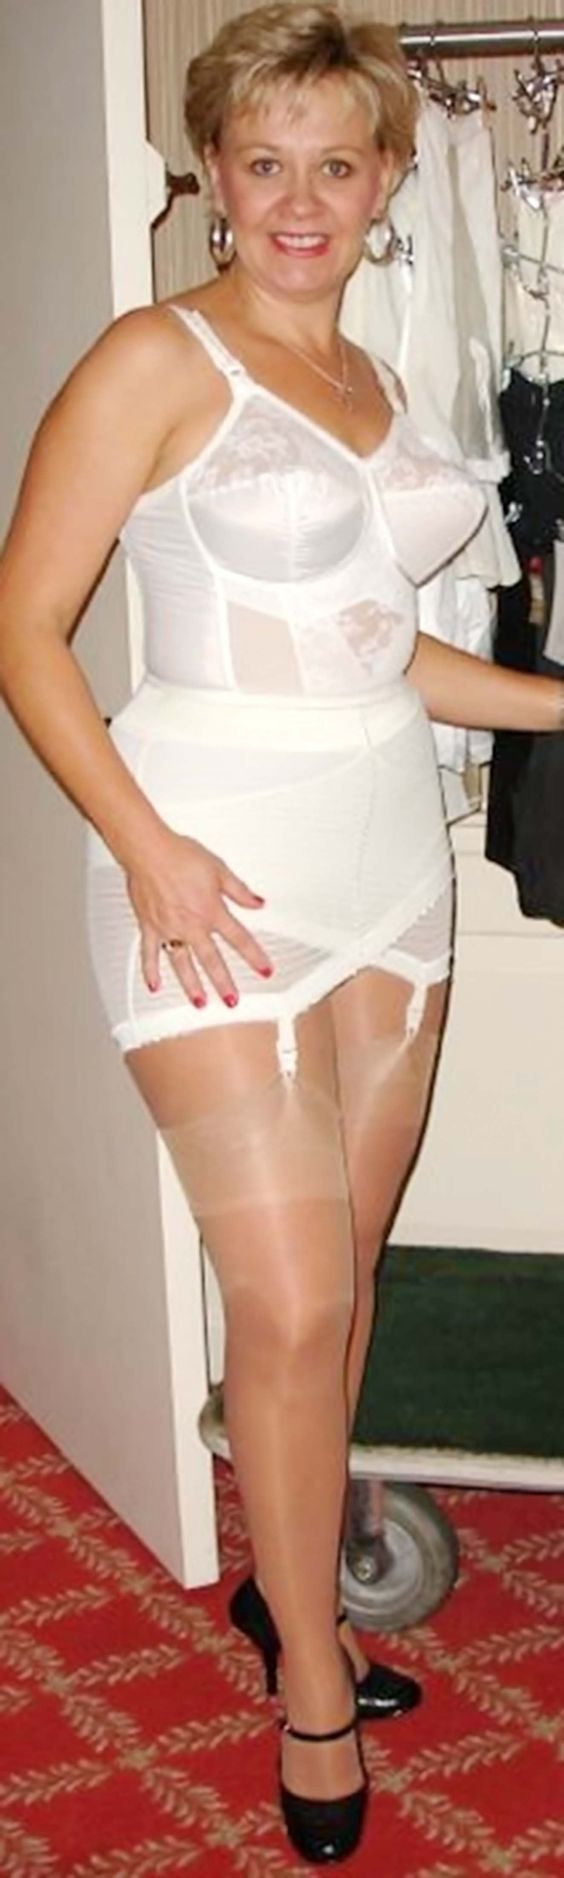 Matures With Girdles 16